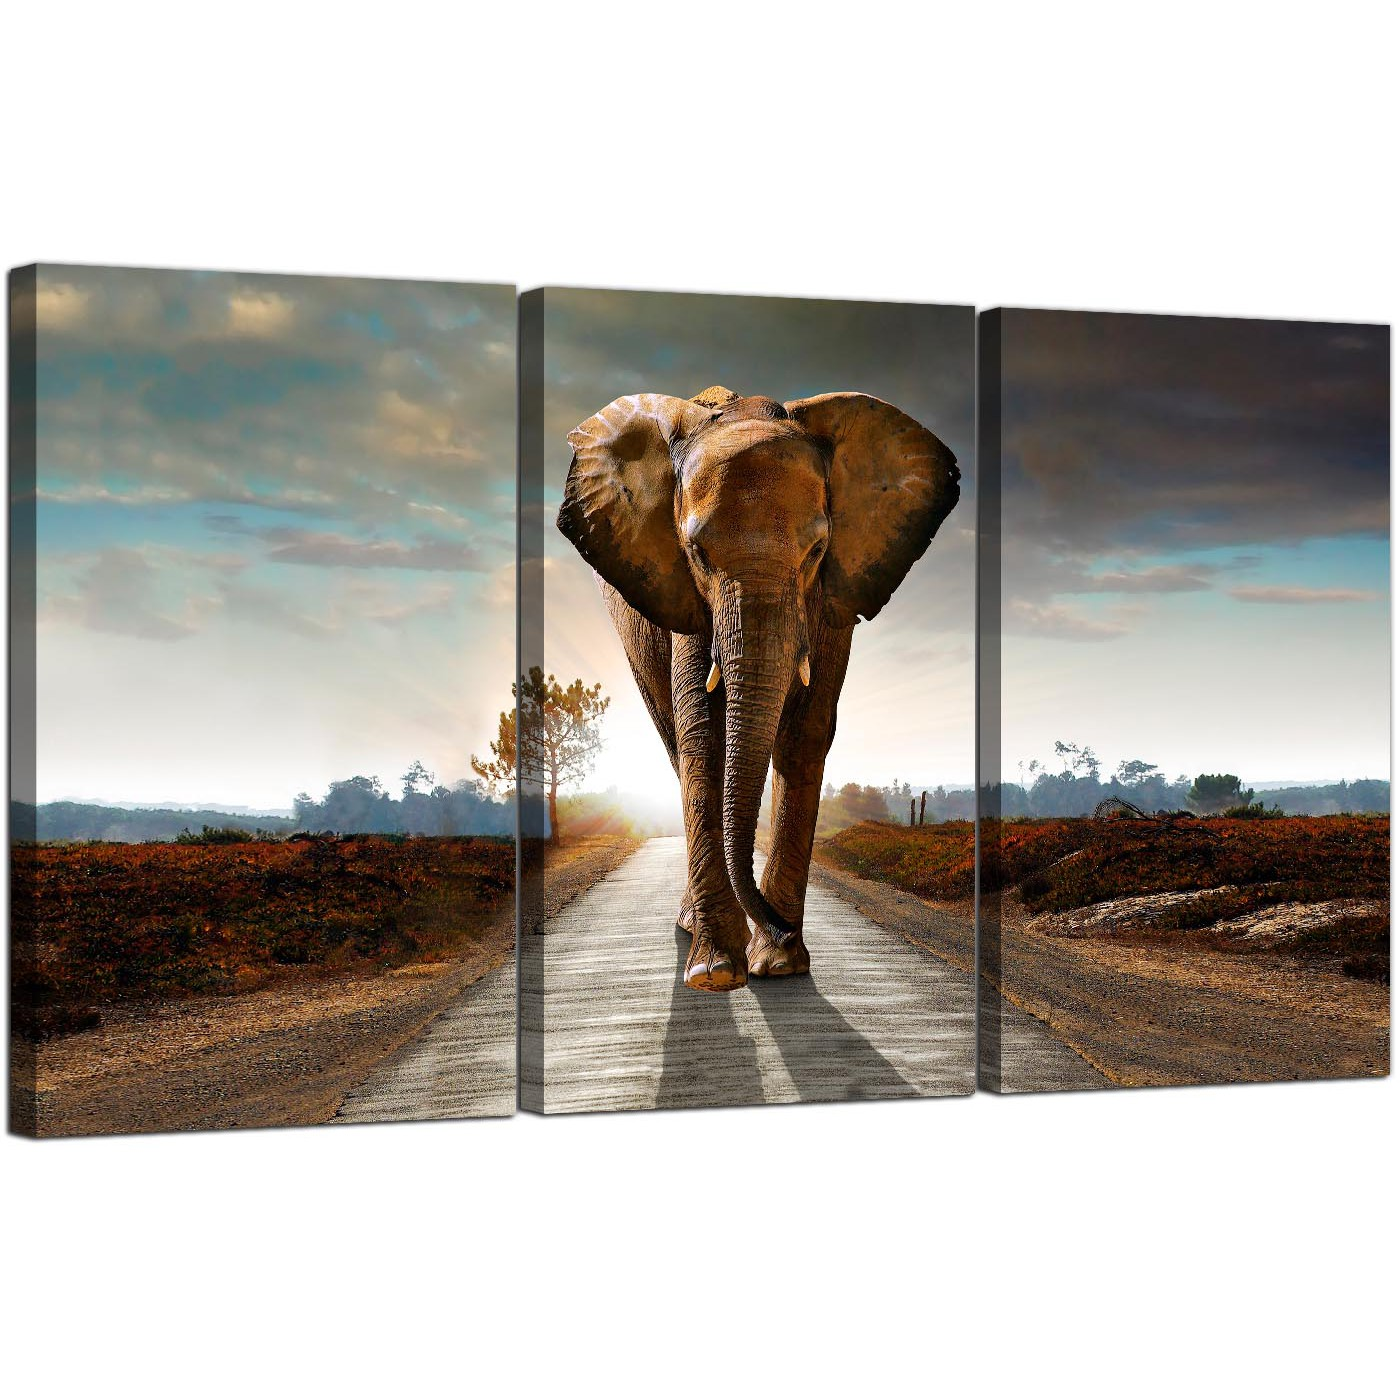 Large African Elephant Canvas Prints 3 Part for your Hallway  sc 1 st  Arigatonen.info & Nice 3 Piece Canvas Wall Art Picture Collection - Wall Painting ...